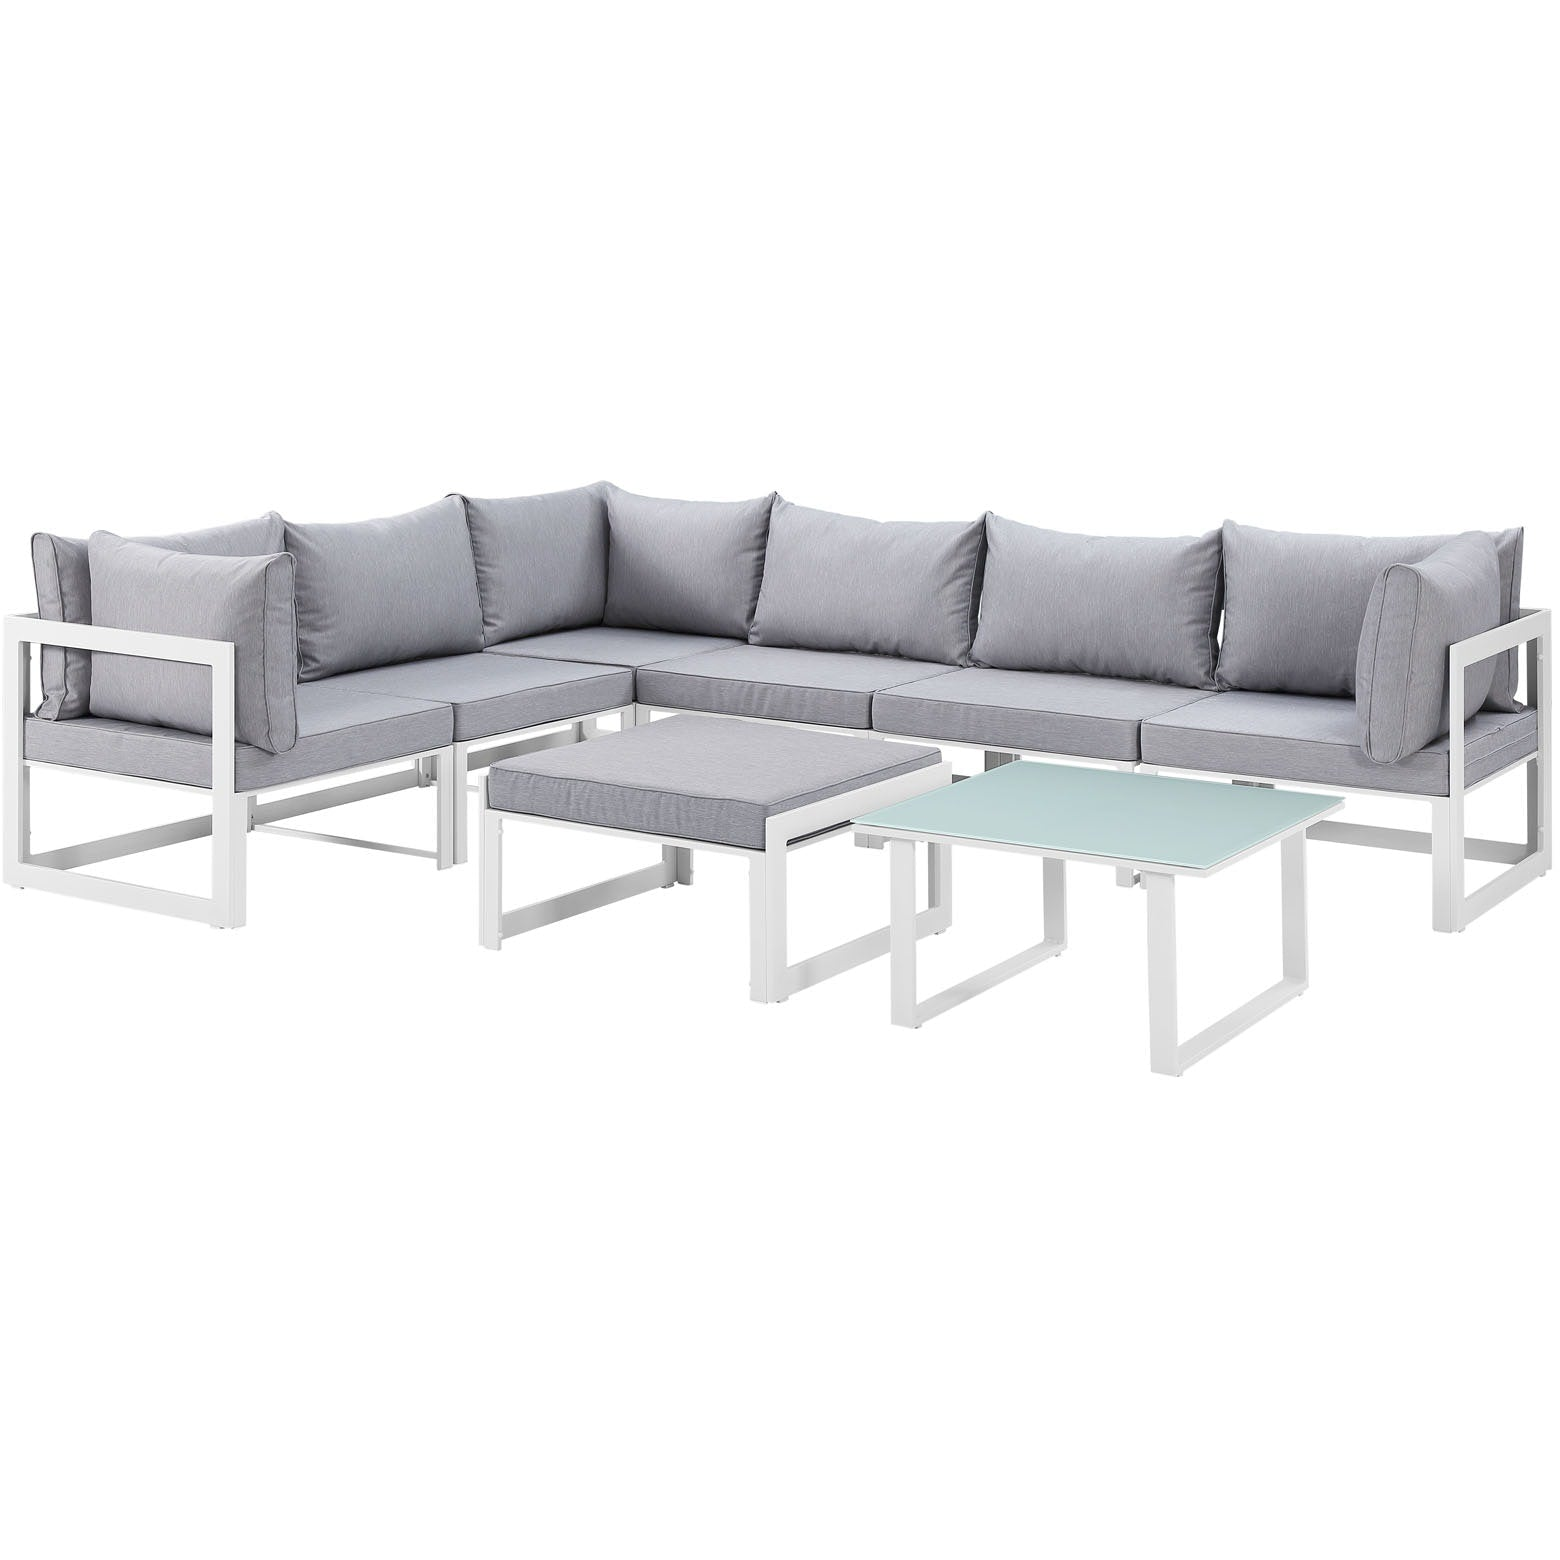 Fortuna 8 Piece Outdoor Patio Sectional Sofa Set - White Gray